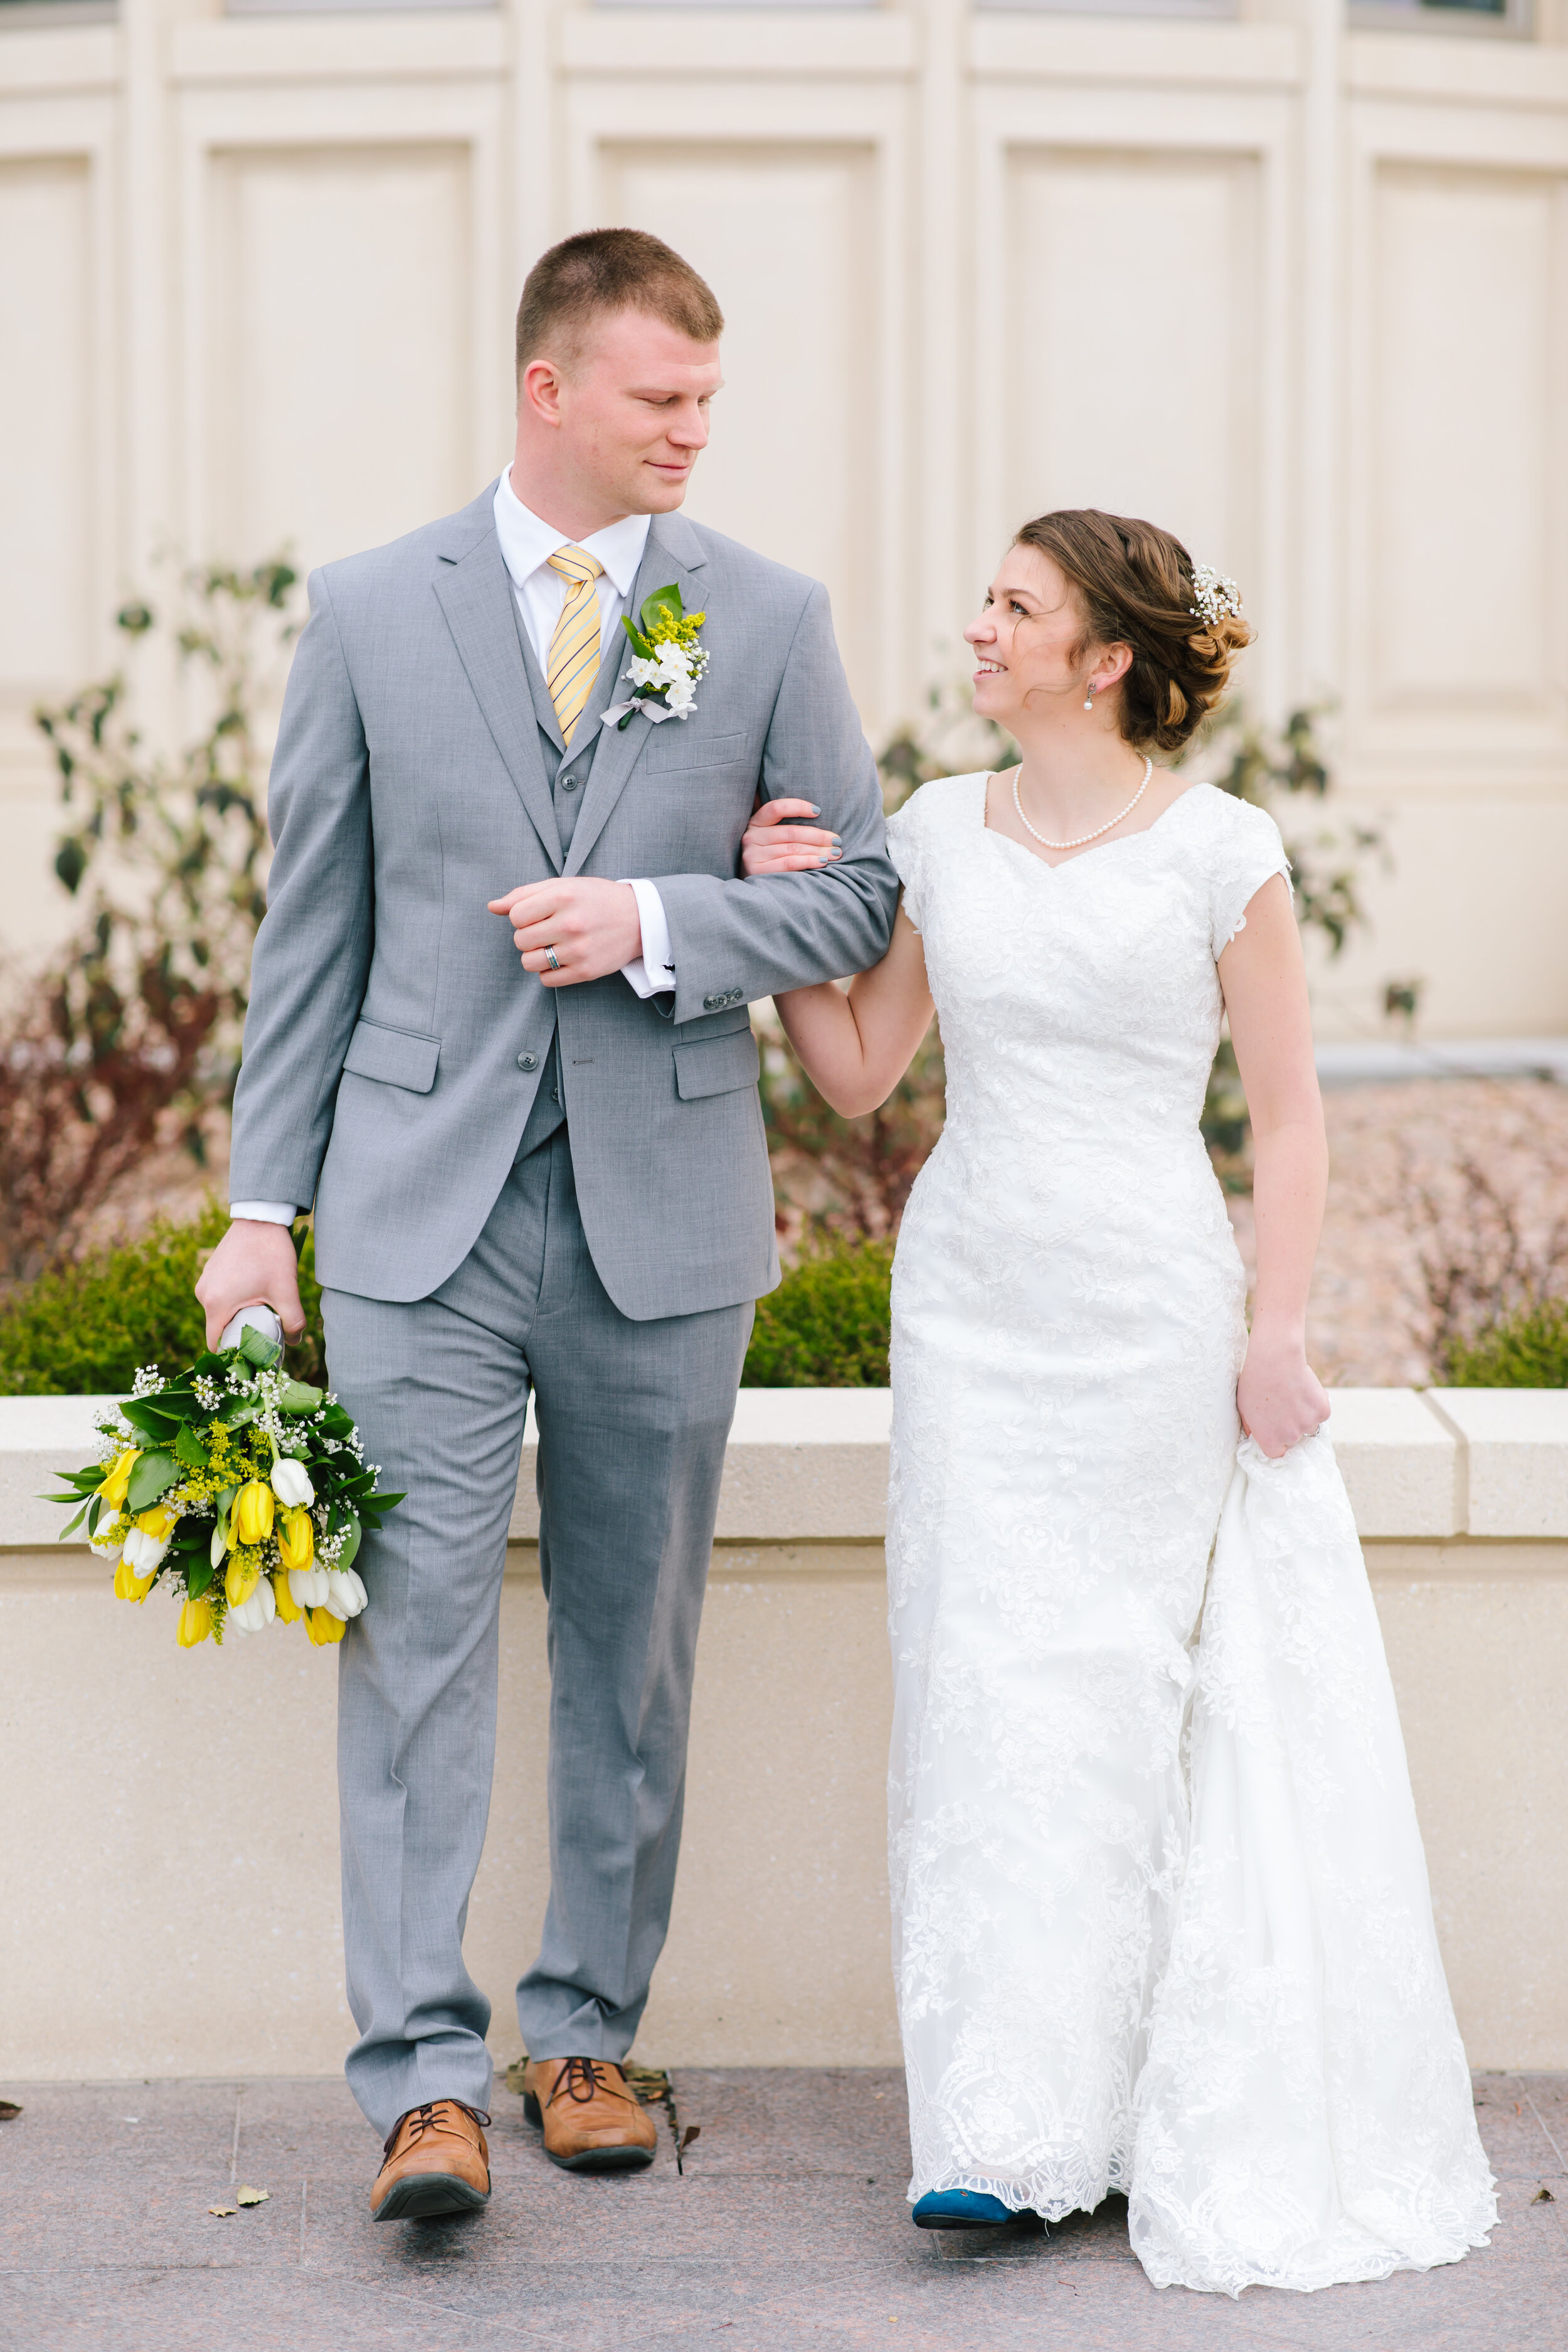 grey tux yellow and white florals payson temple grounds couple walking pose three piece tux groom outfit inspiration modest short tulip sleeved wedding dress wedding aesthetic inspiration couple goals temple grounds payson temple location wedding utah professional #eternalbuddies #weddingsession #weddinginspo #ldswedding #ldsbride #couplegoals #paysontemple #temple #profressionalphotographer #utah #love